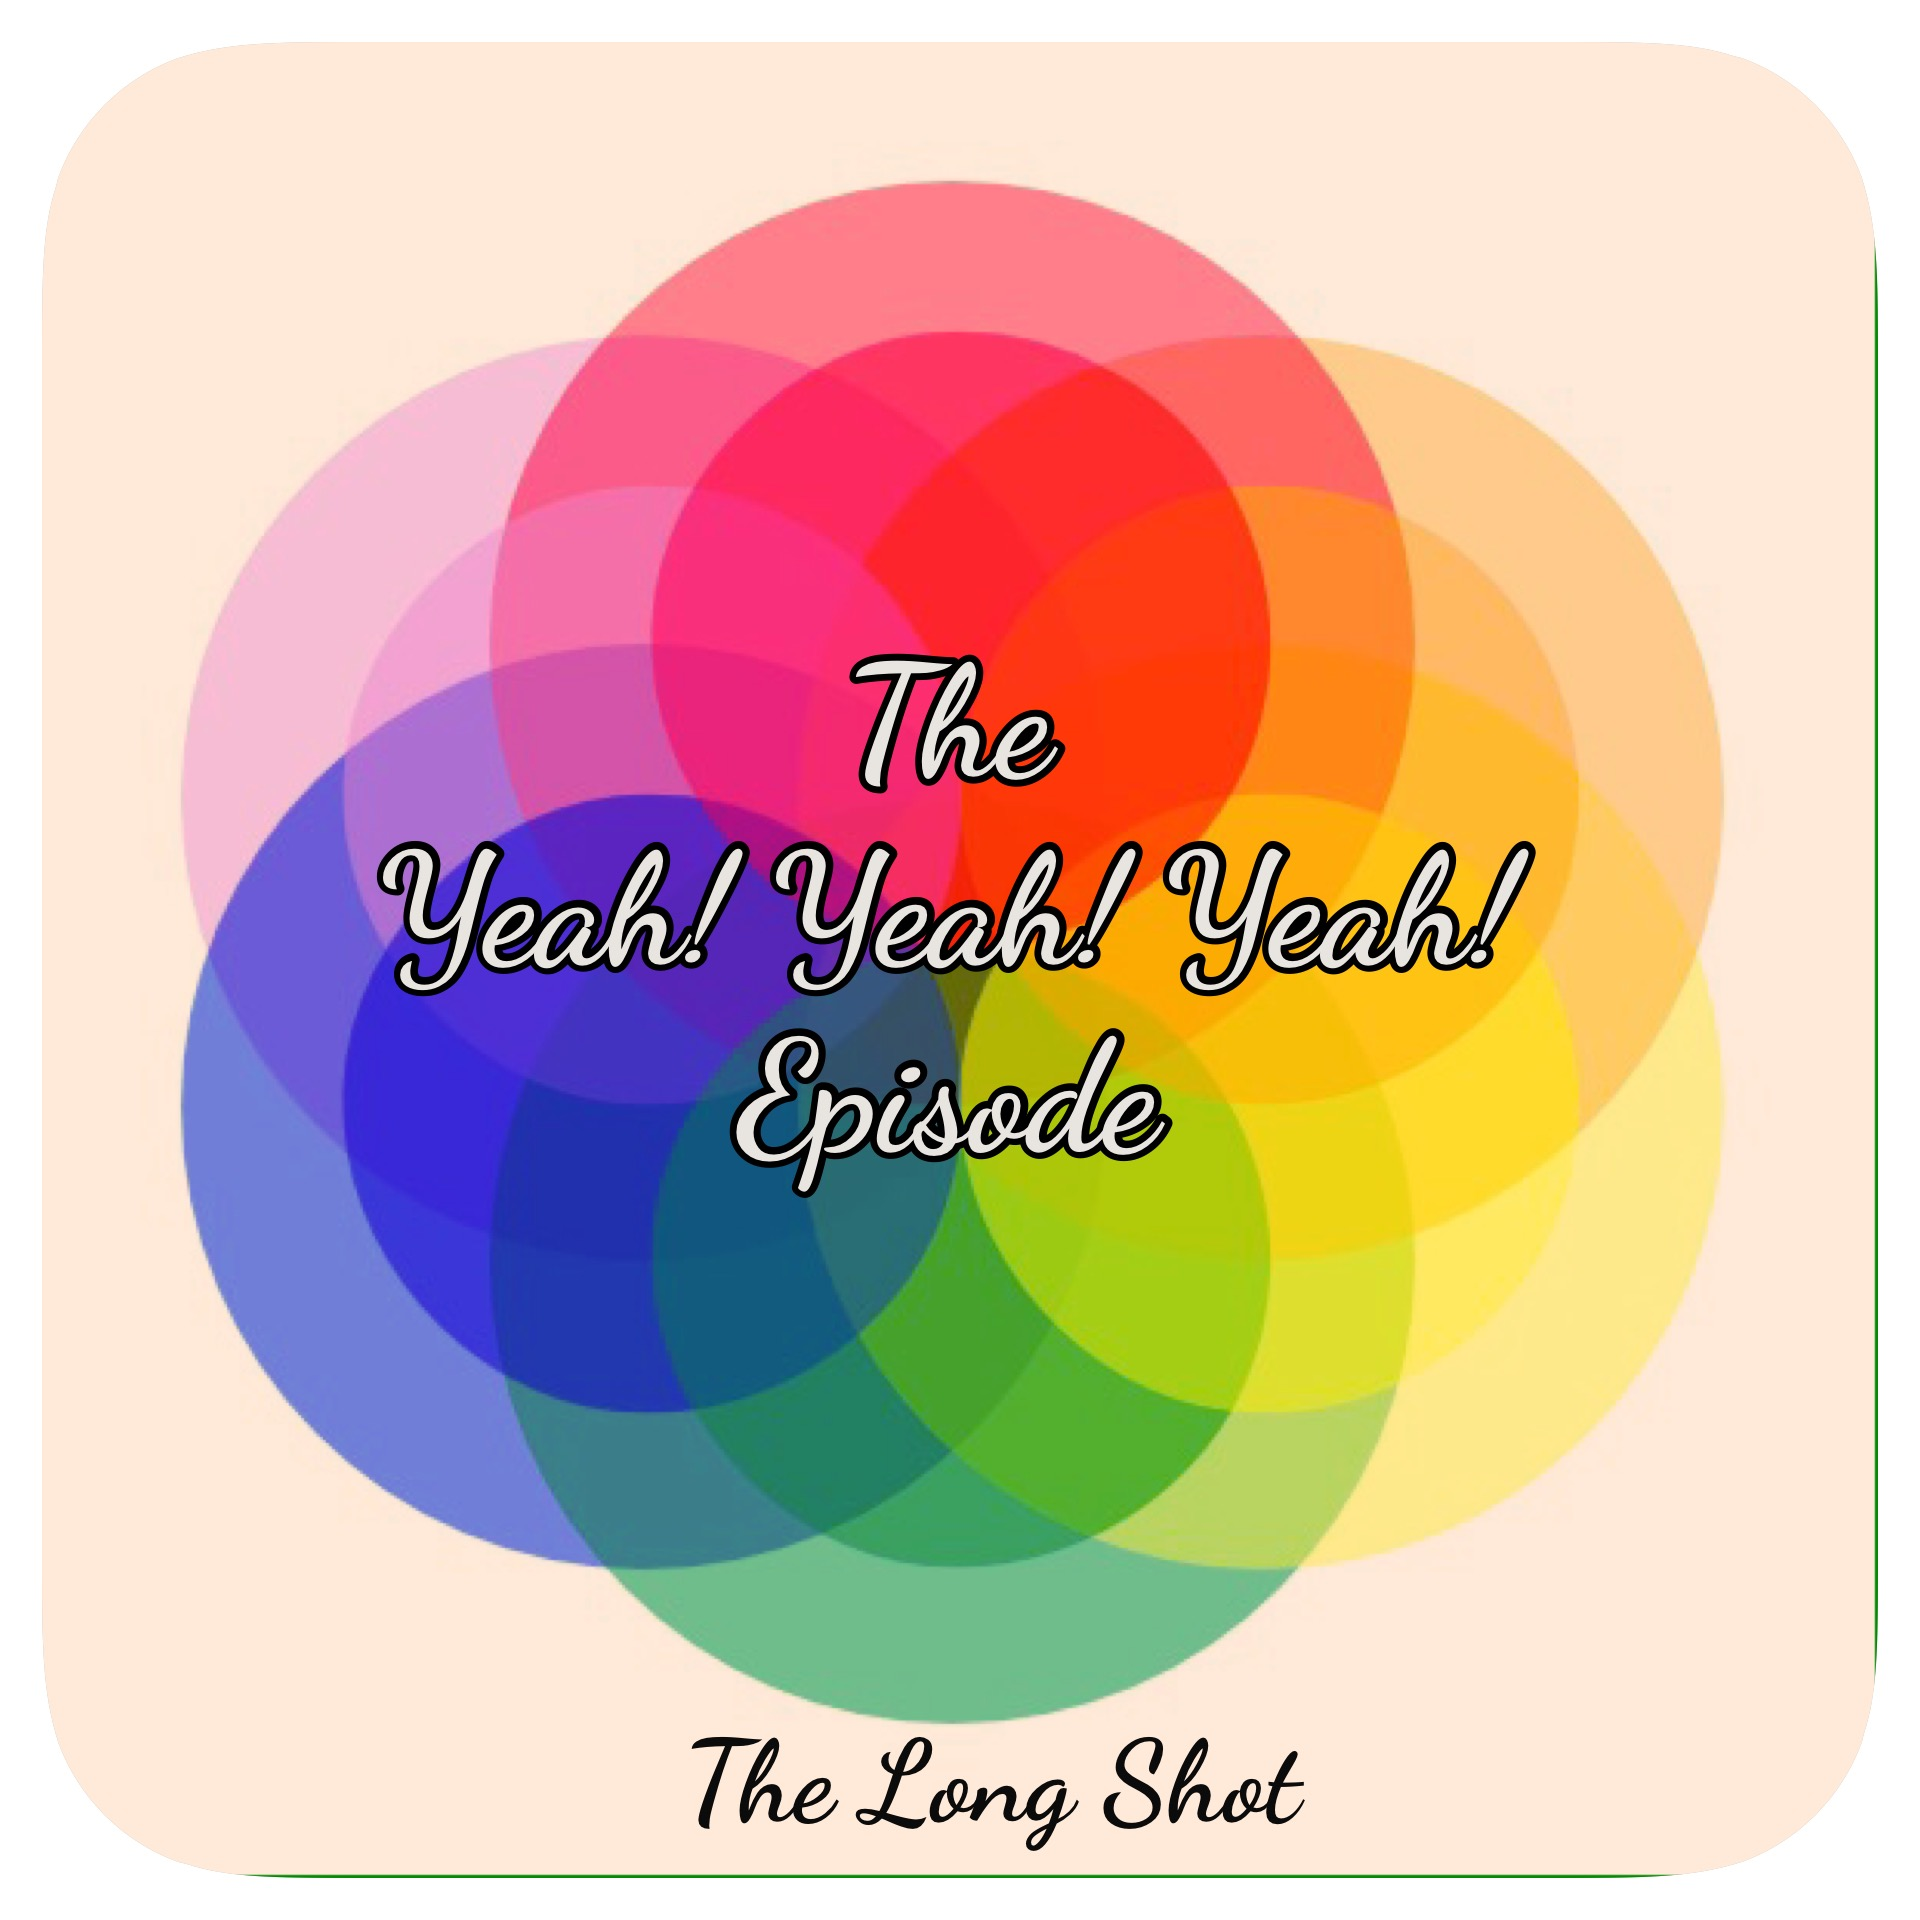 Episode #910: The Yeah! Yeah! Yeah! Episode featuring The Flams